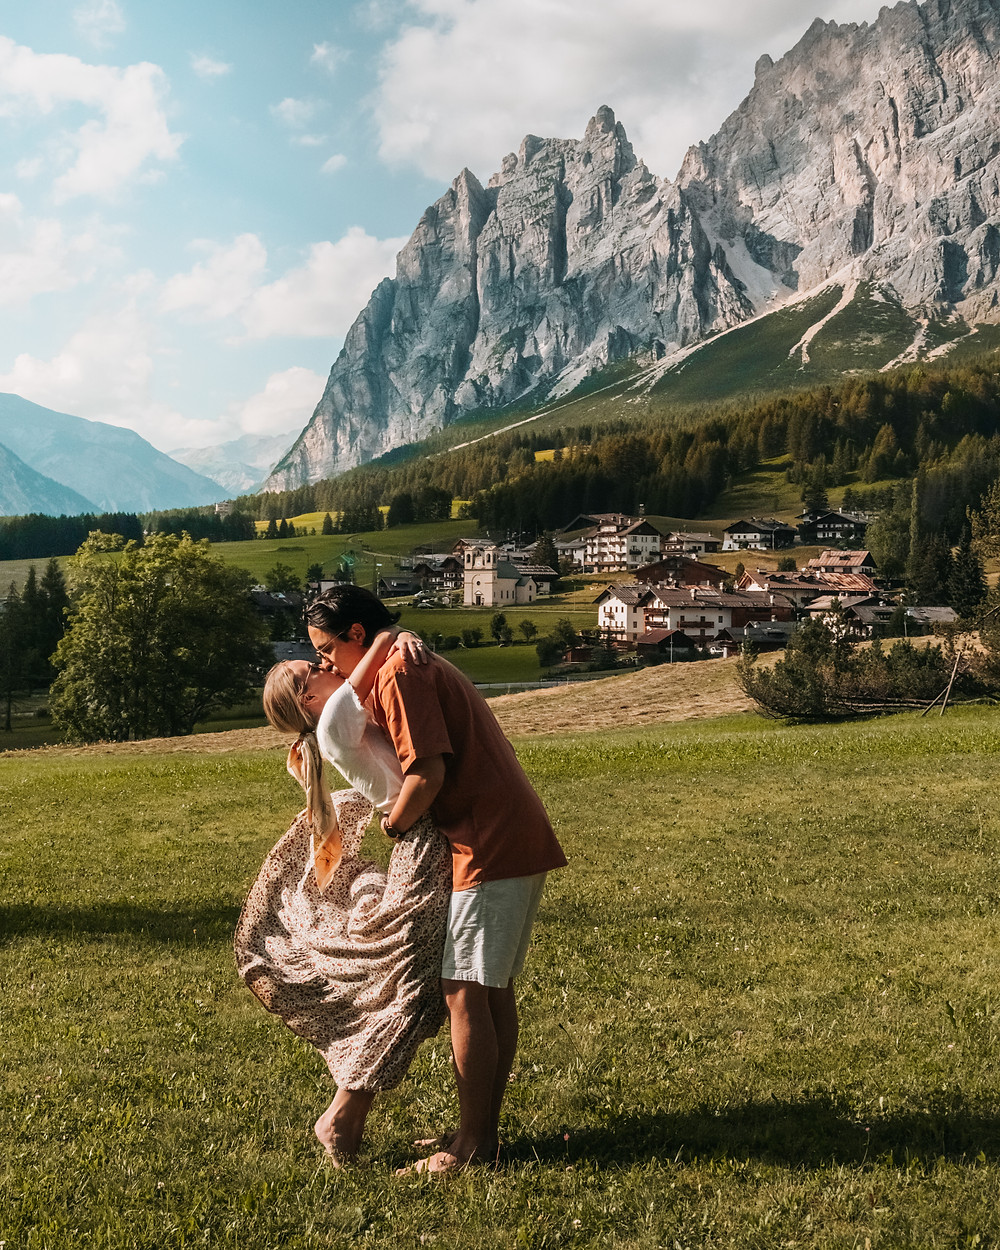 Instagrammable location, Cortina D'Ampezzo, Dolomites Italy